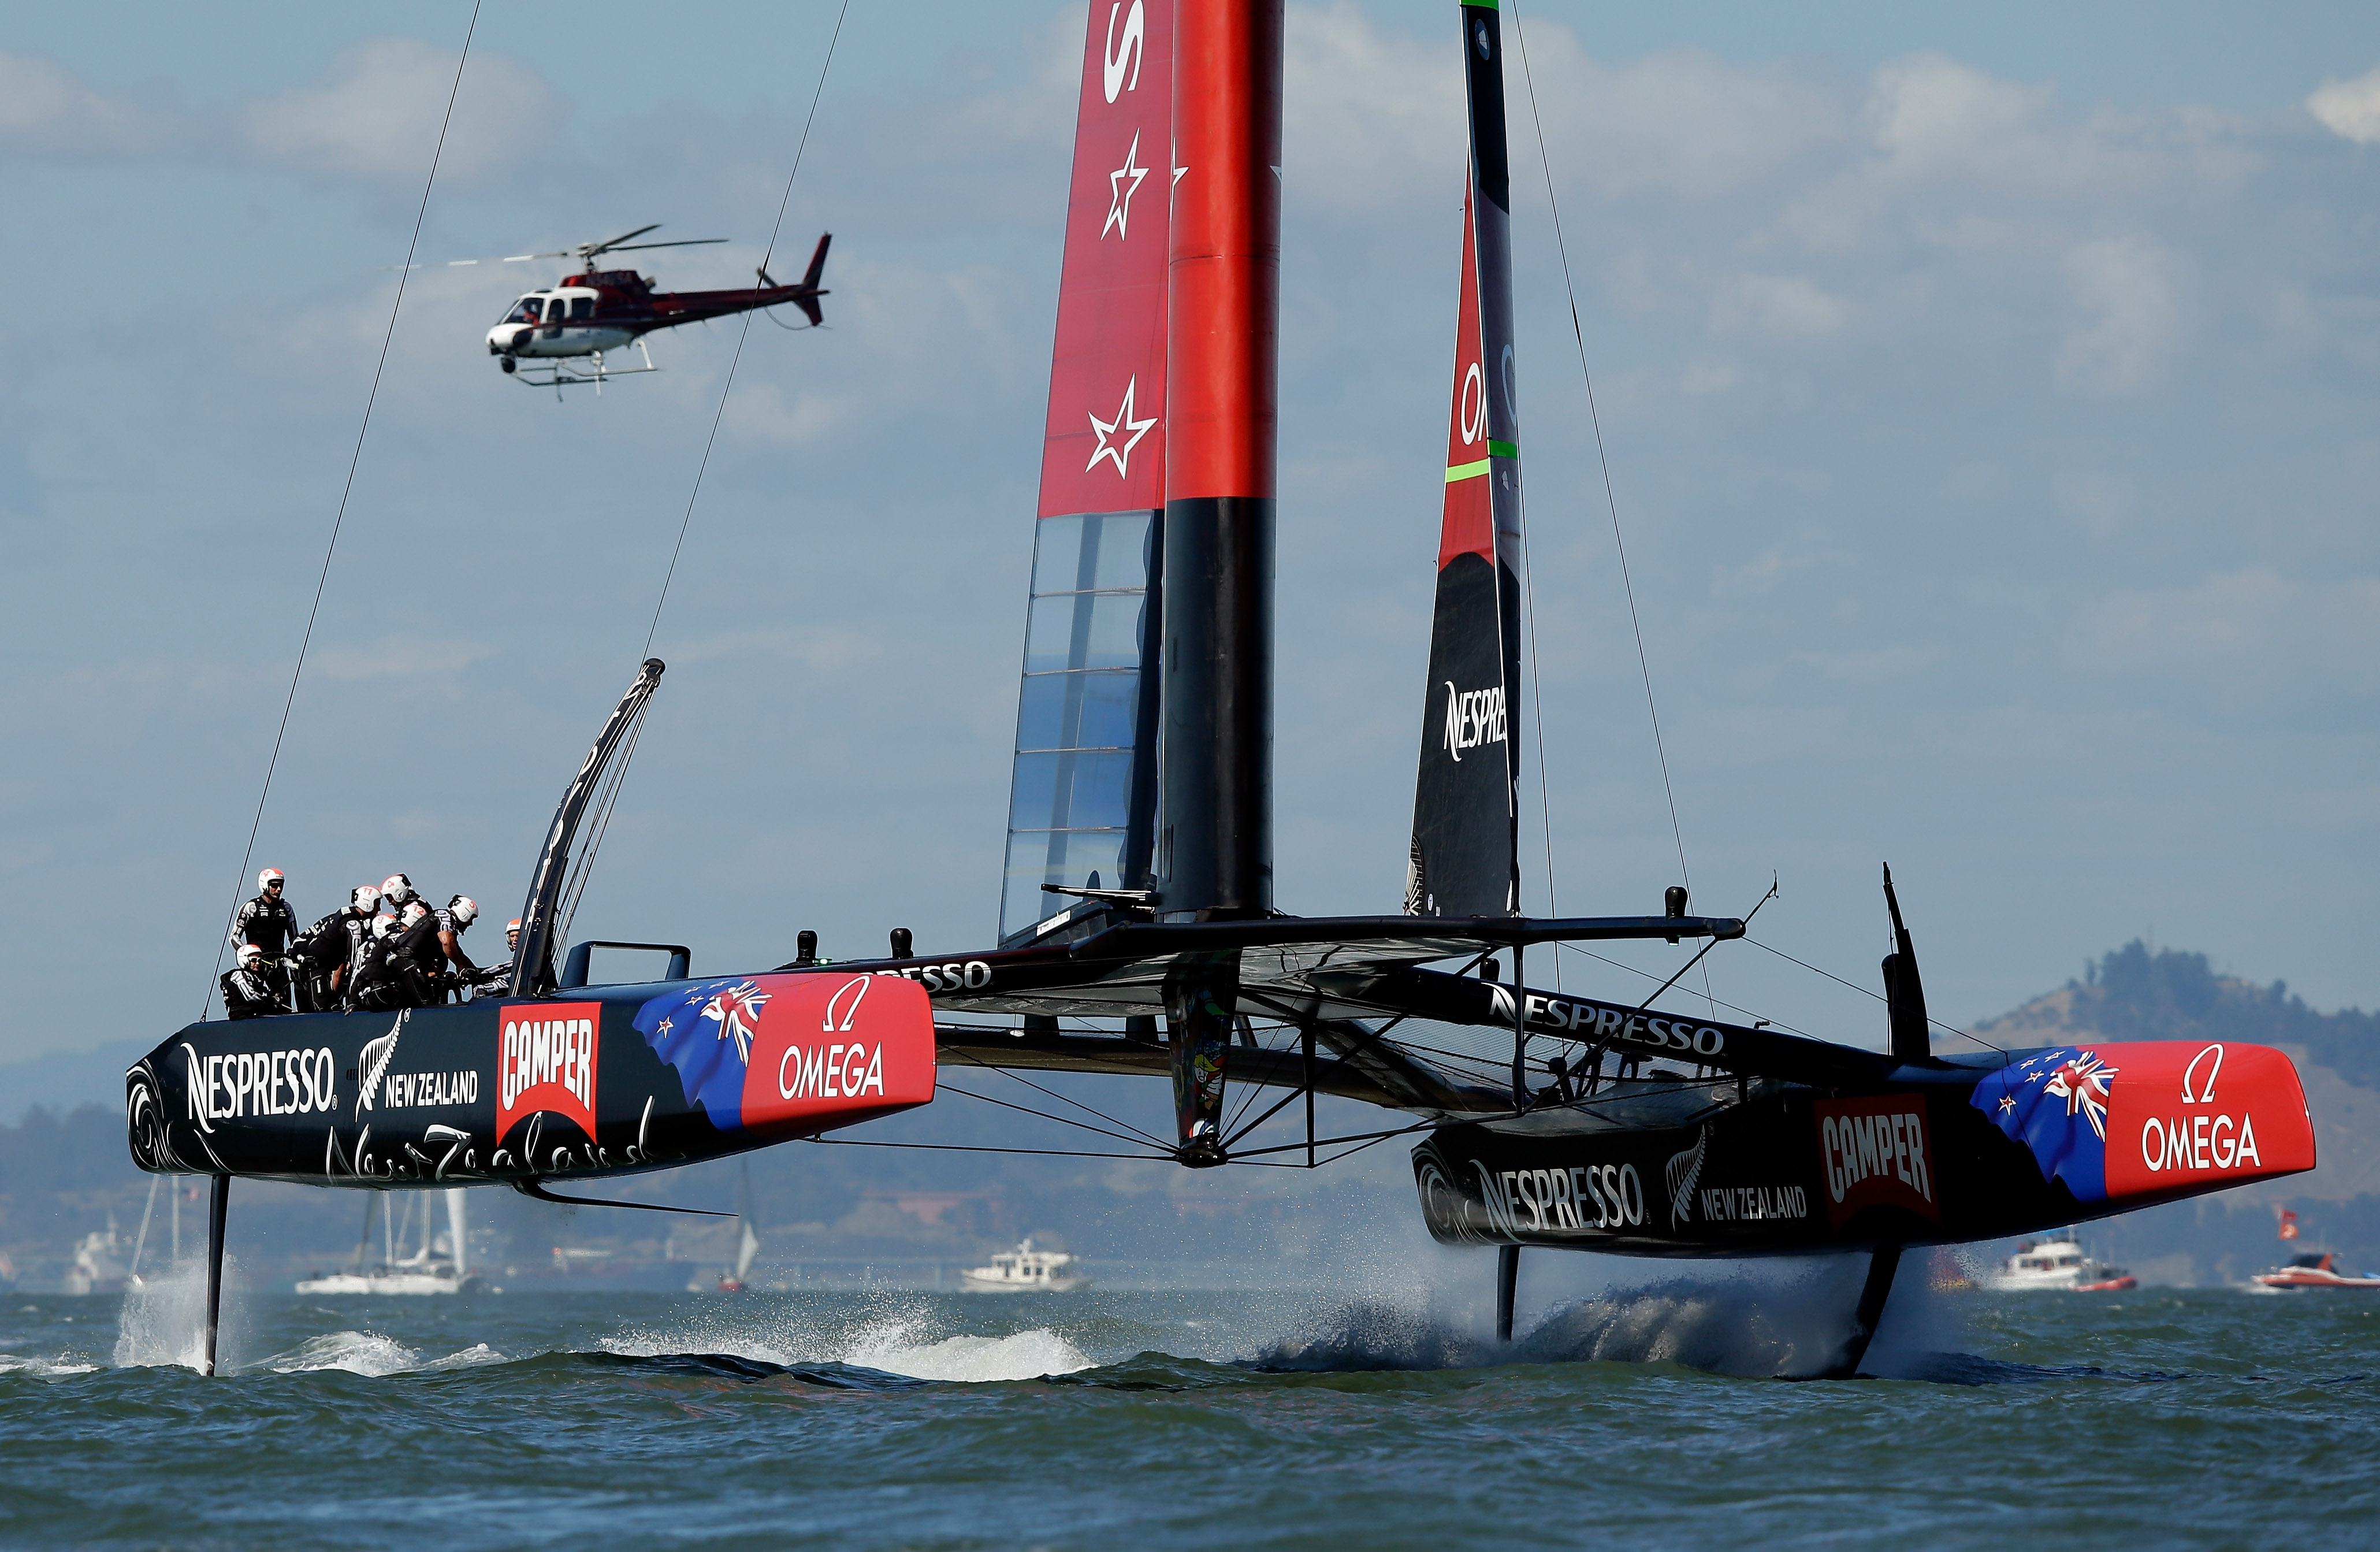 SAN FRANCISCO, CA - SEPTEMBER 22:  Emirates Team New Zealand skippered by Dean Barker in action against Oracle Team USA skippered by James Spithill during race 15 of the America's Cup Finals on September 22, 2013 in San Francisco, California.  Oracle Team USA won both race 14 and 15 today.  (Photo by Ezra Shaw/Getty Images)